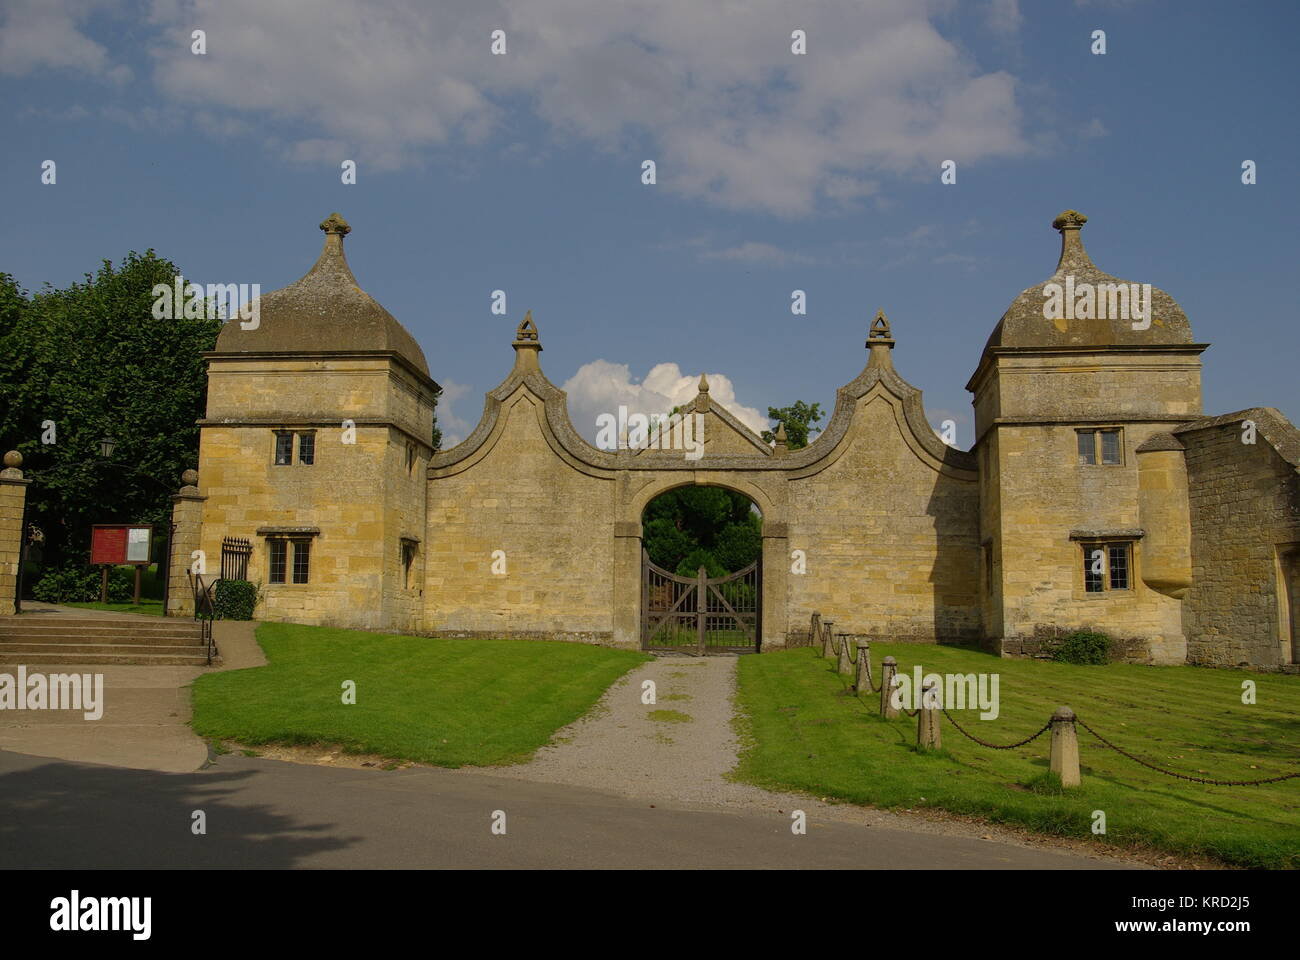 Lodge gates to a former mansion at Chipping Campden, Gloucestershire.      Date: 2009 - Stock Image